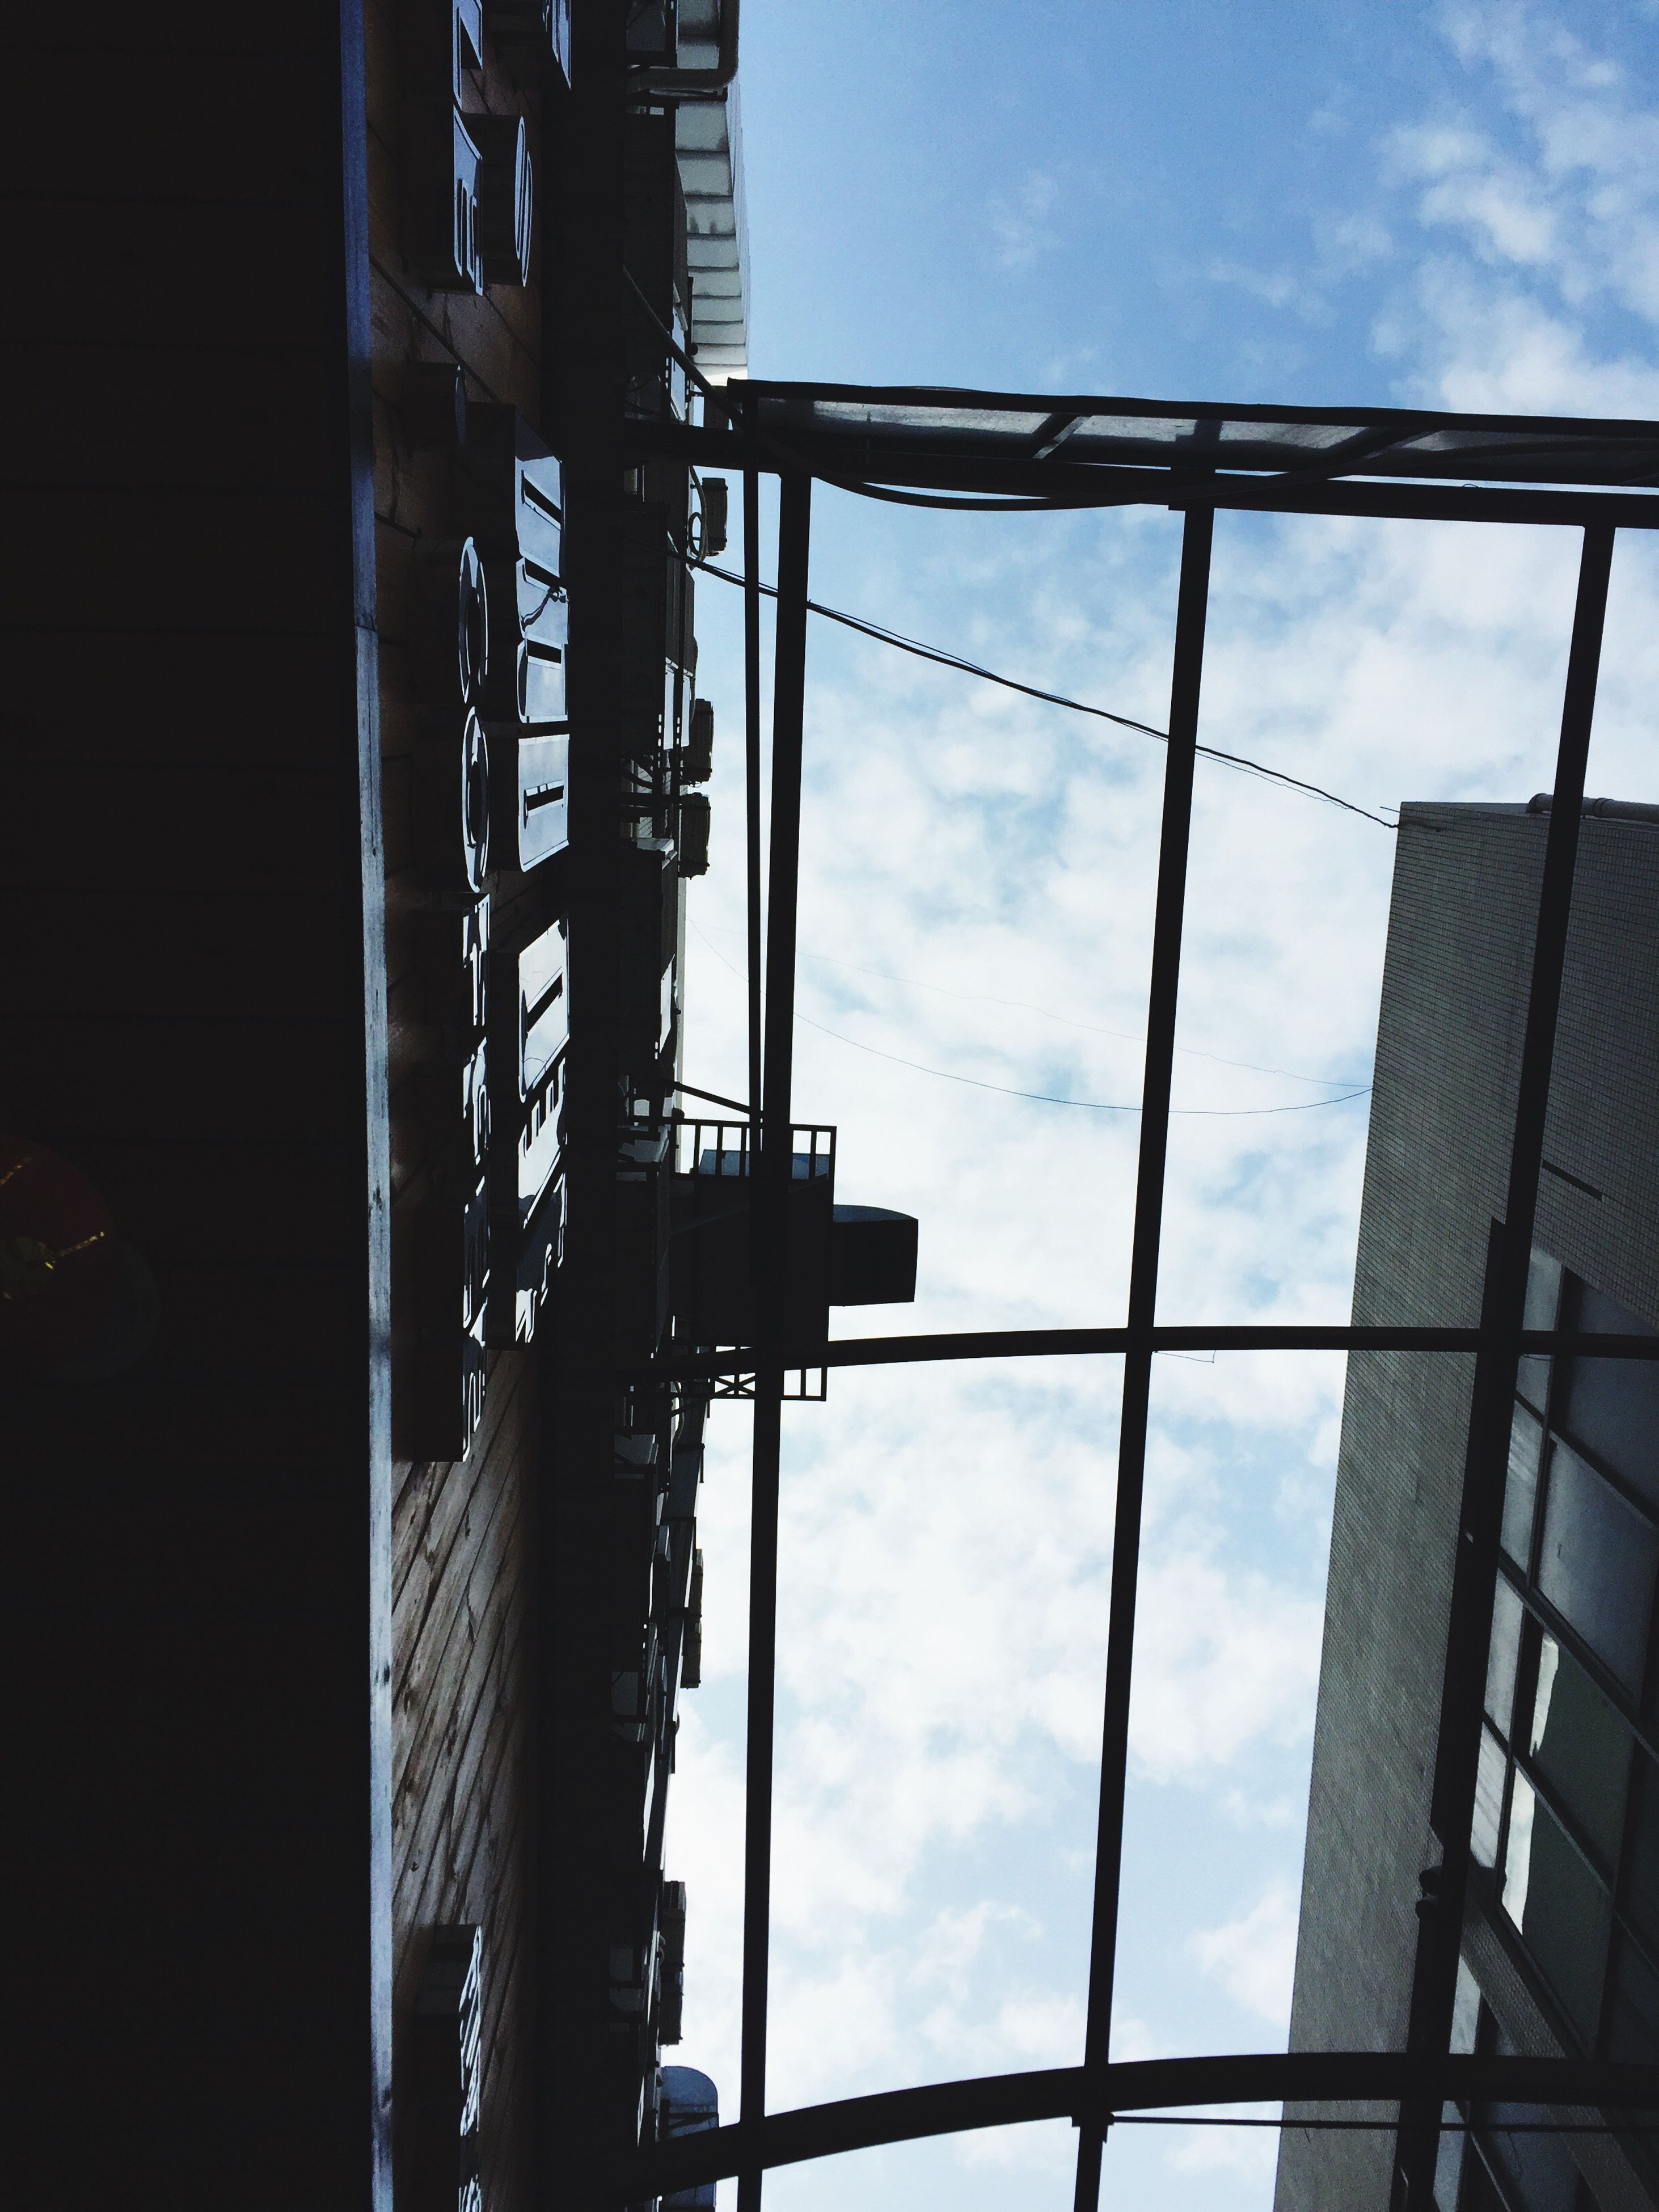 low angle view, built structure, architecture, sky, building exterior, cloud - sky, metal, glass - material, day, building, cloud, window, outdoors, city, cloudy, metallic, no people, modern, reflection, construction site